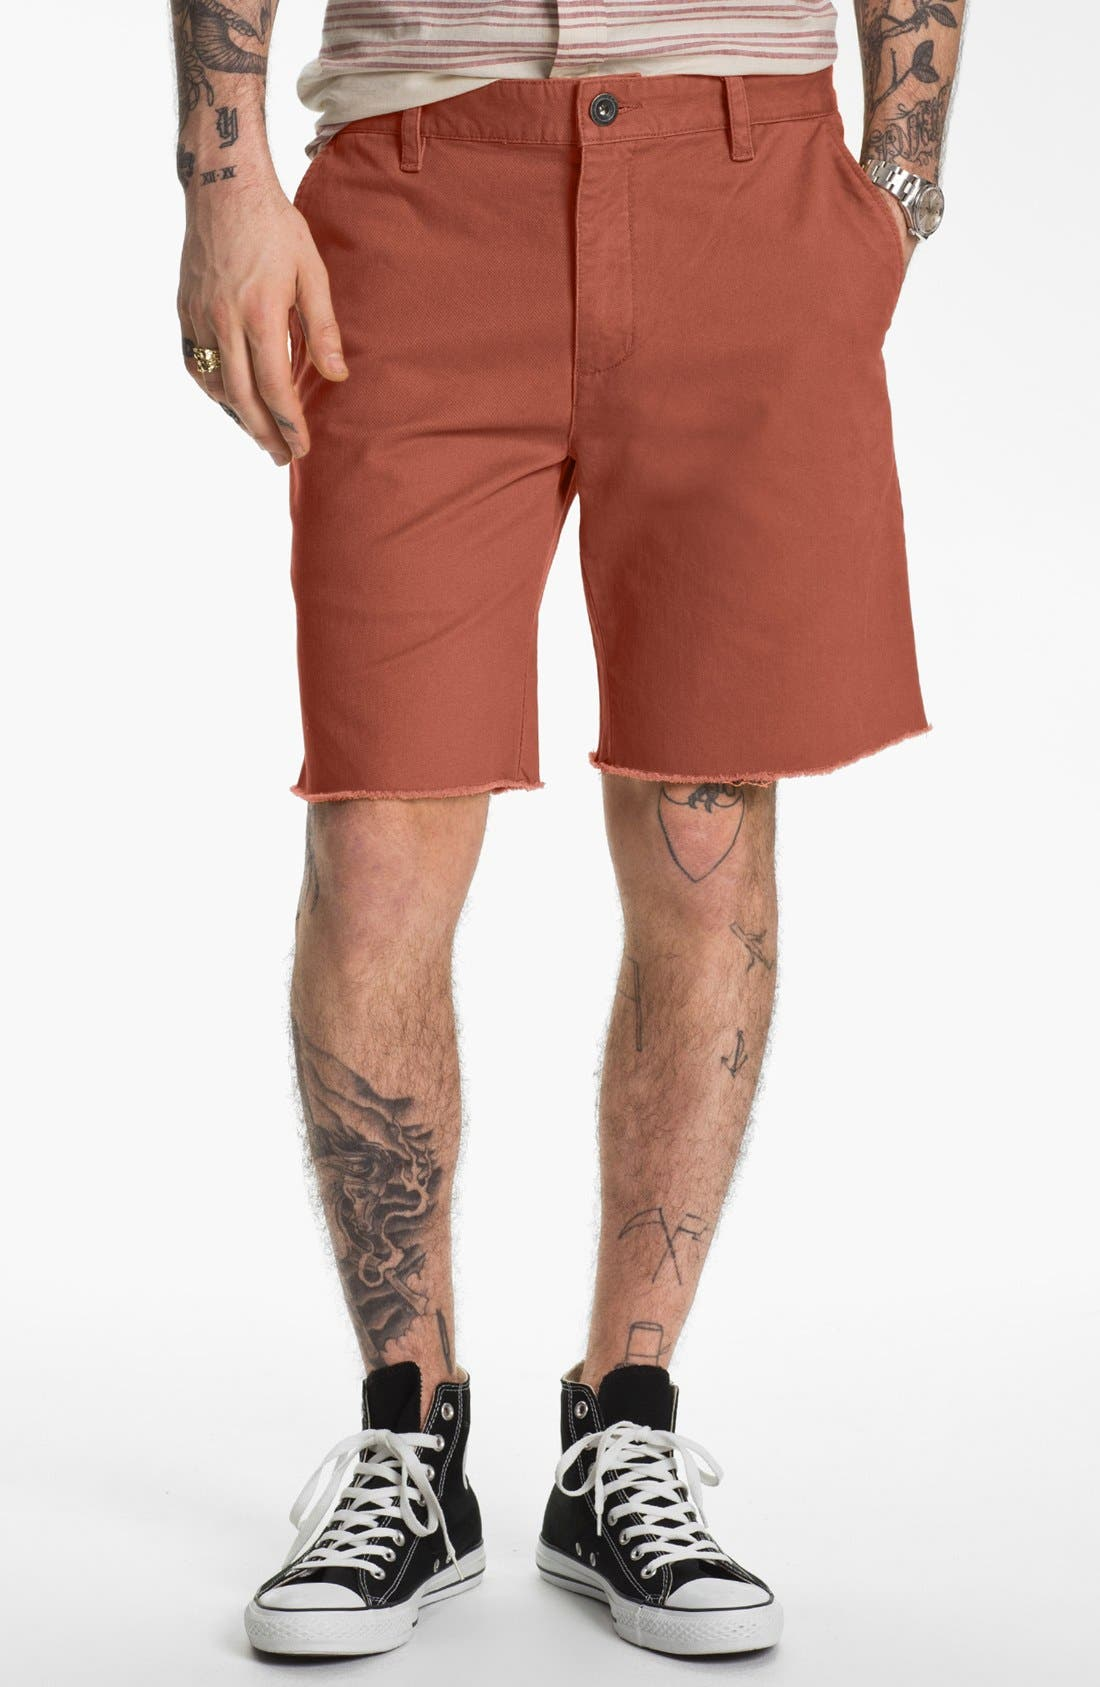 Alternate Image 1 Selected - RVCA 'All Time' Cut Off Chino Shorts